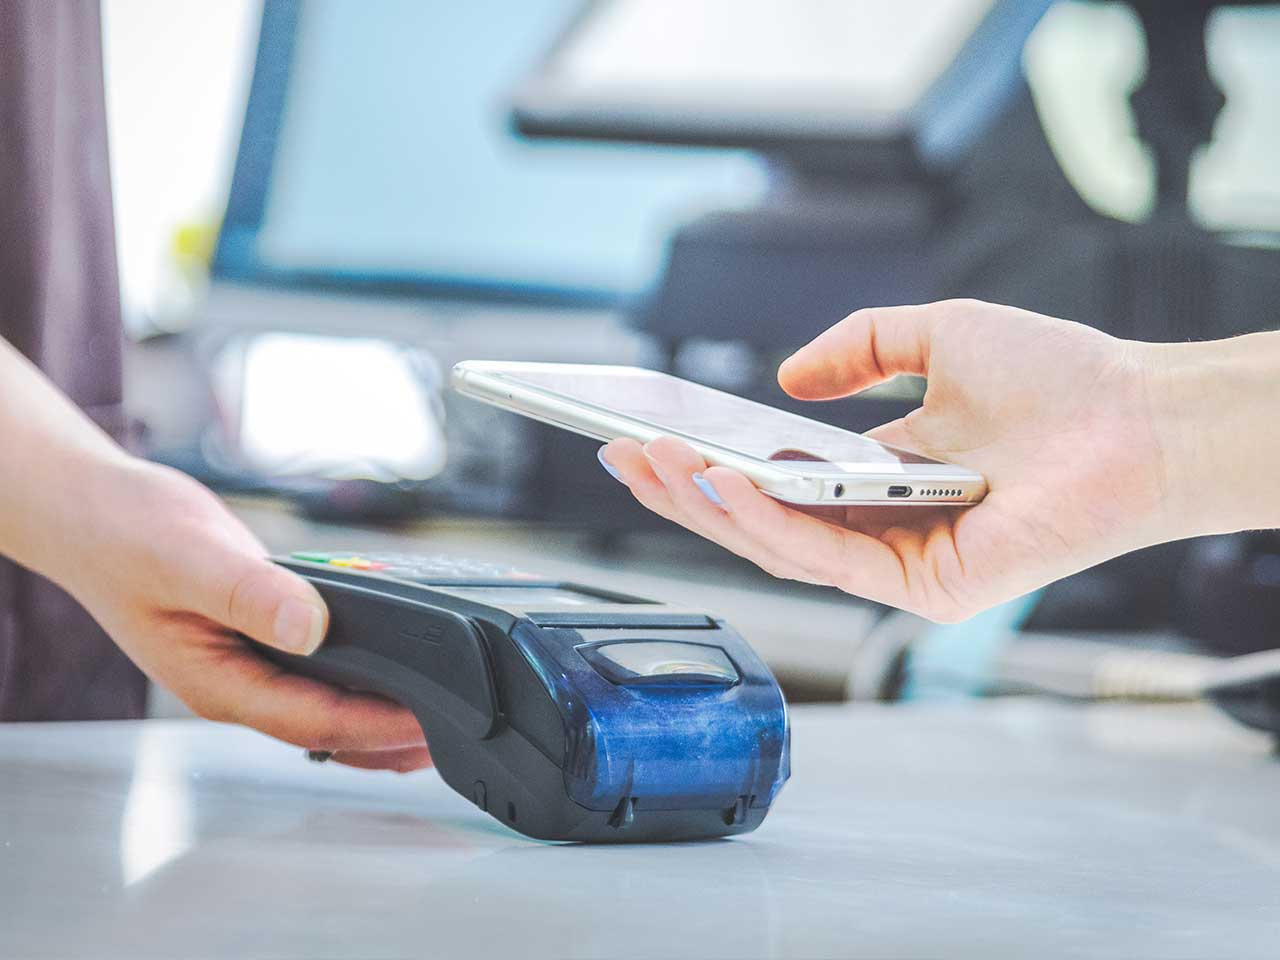 using mobile phone for payment